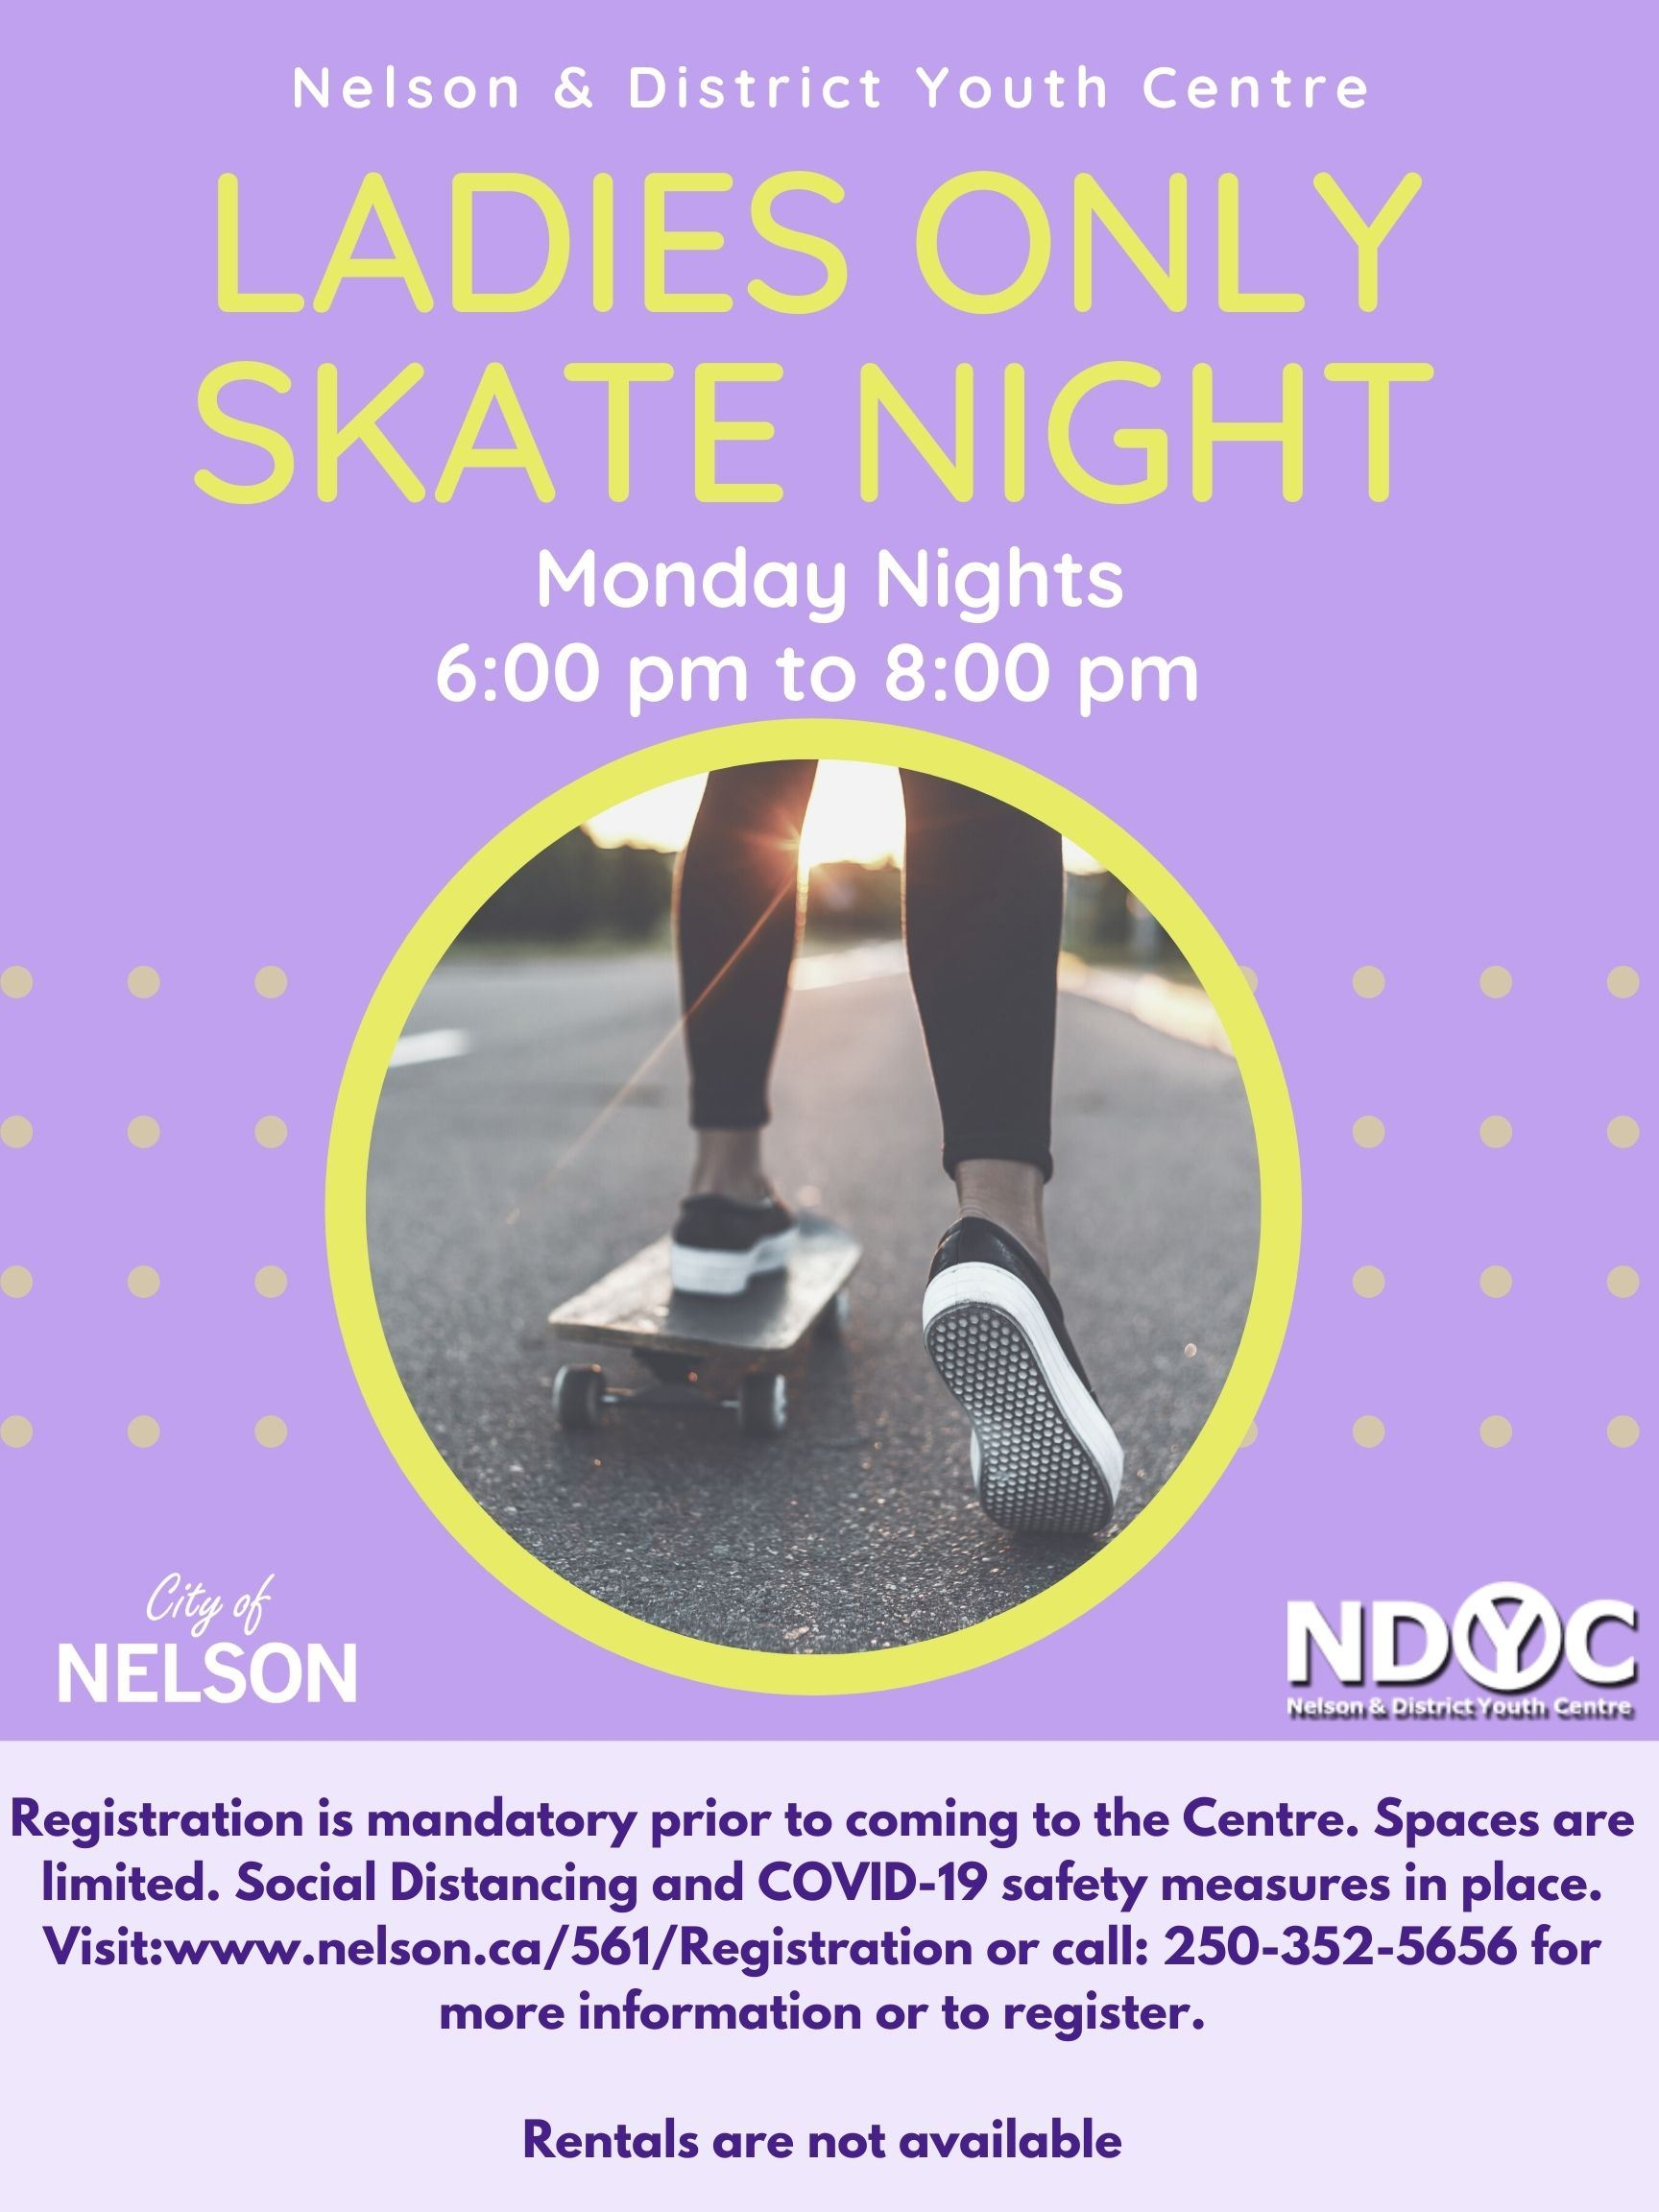 Ladies Only Skate Night